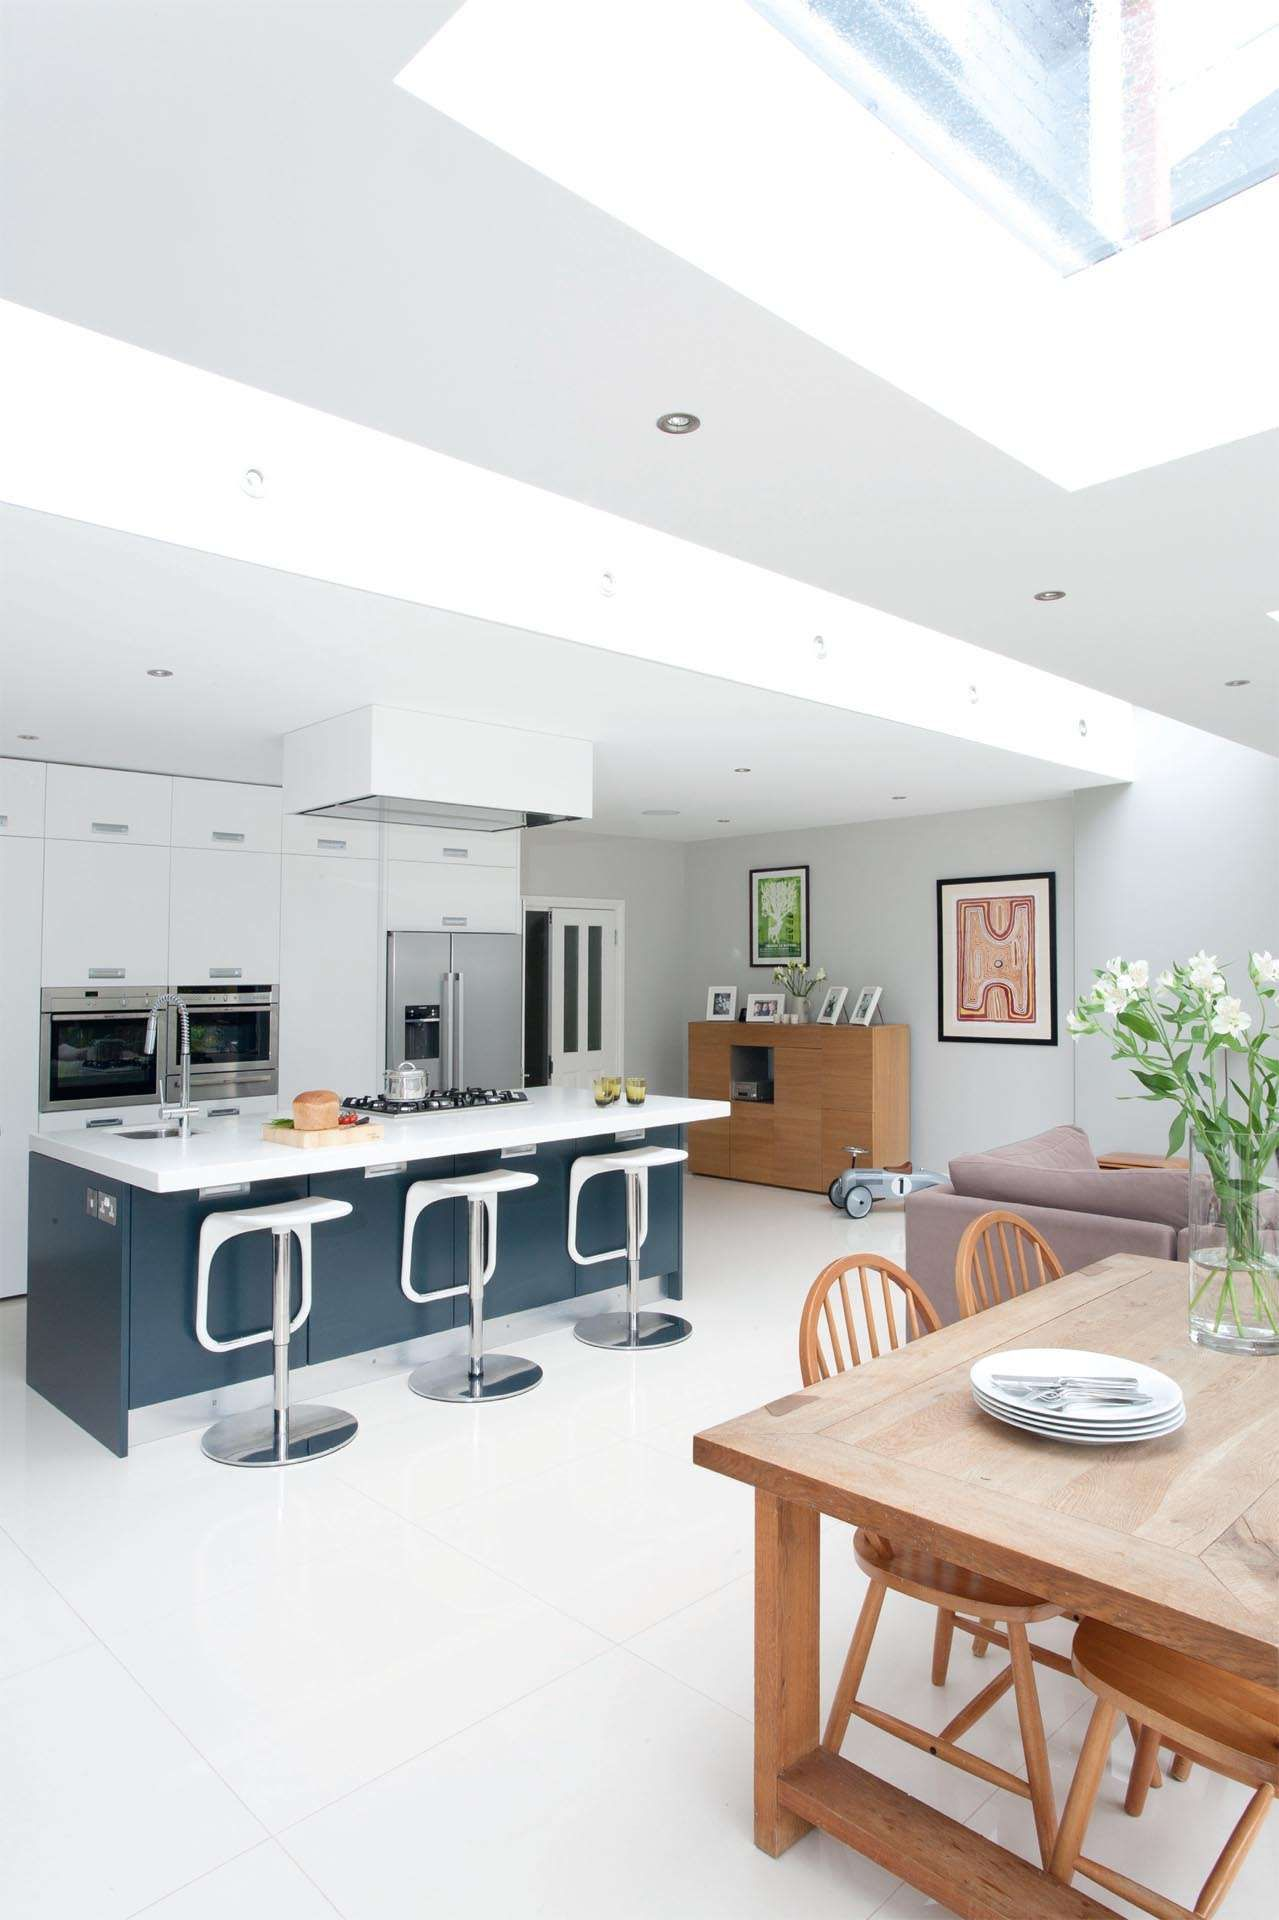 Kitchen Diner Extension Design Extending A Semi Detached House Real Homes Home Ideas Kitchen